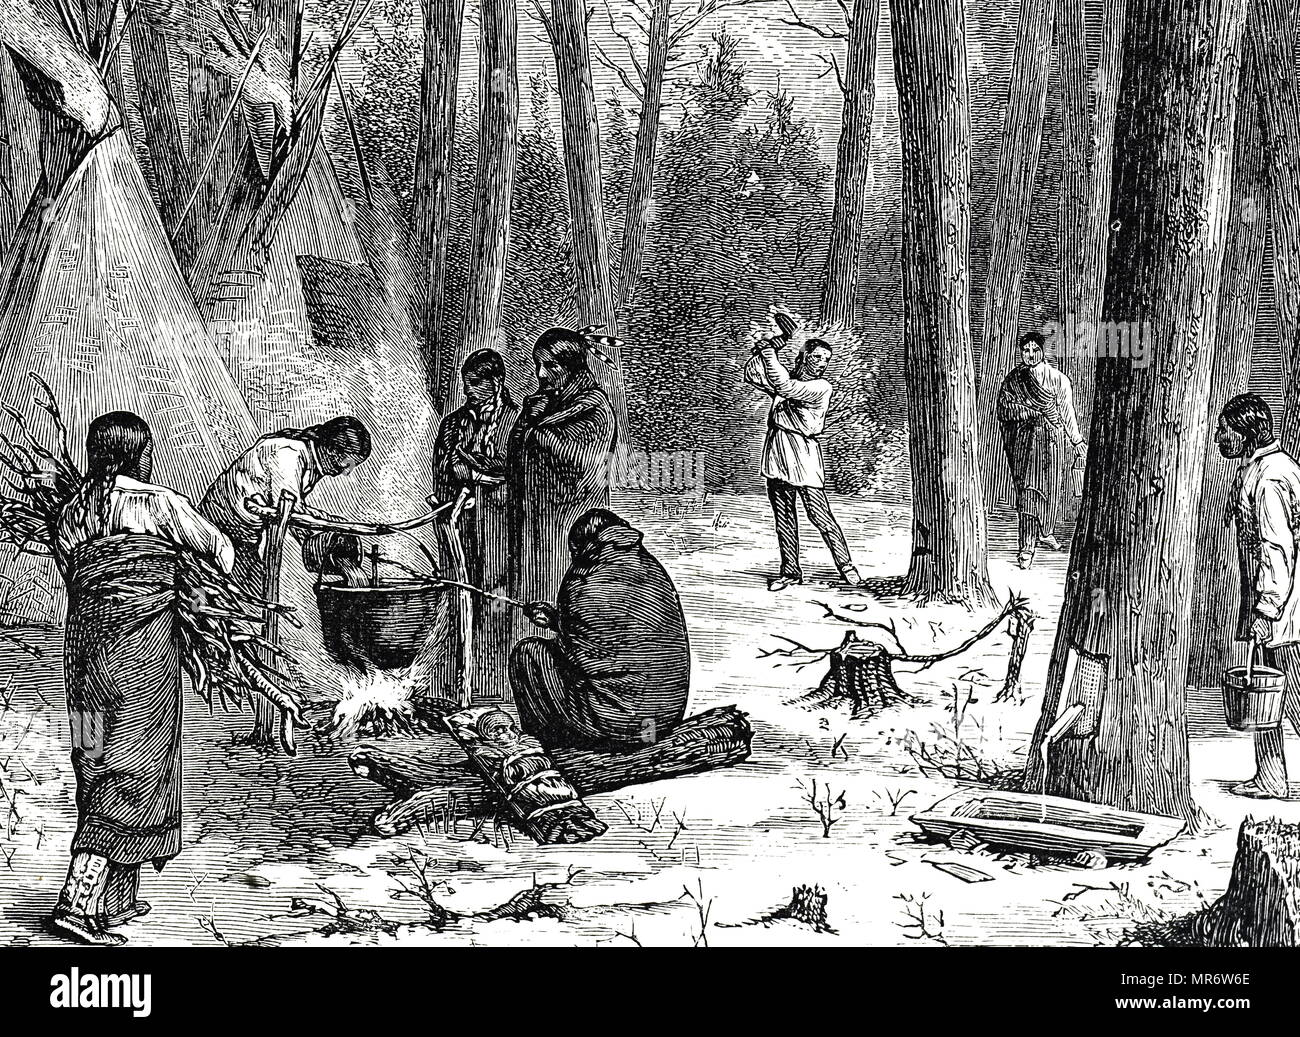 Engraving depicting North American Indians gathering maple sap and boiling it down into syrup and sugar. Dated 19th century - Stock Image